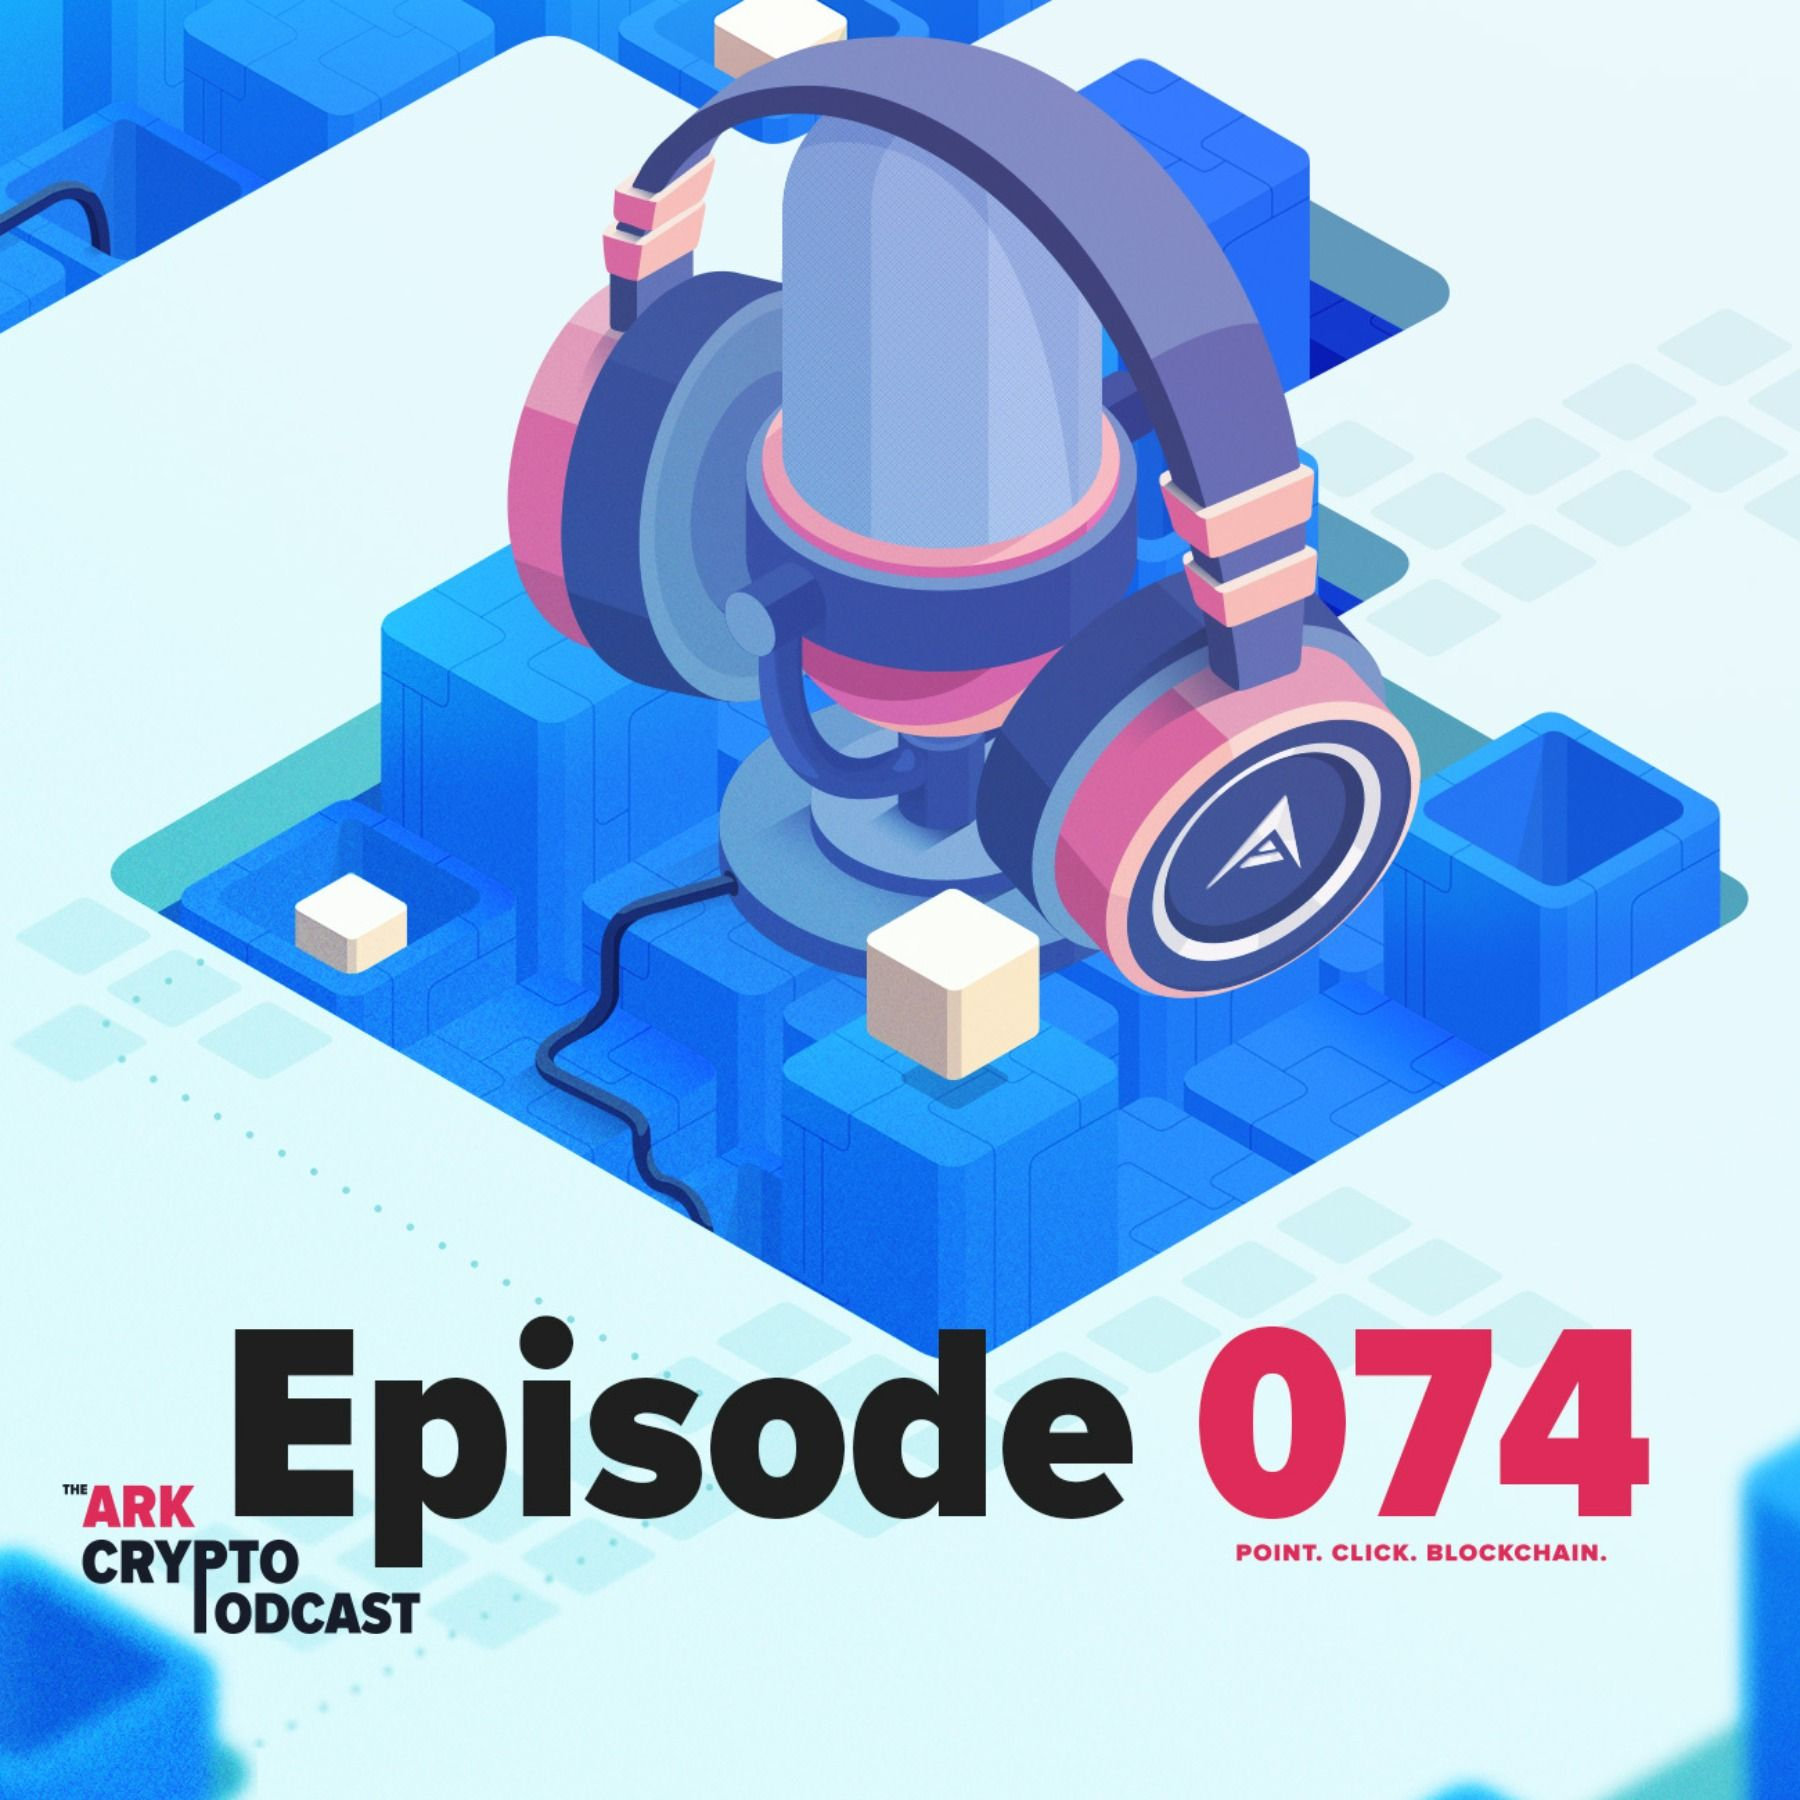 ARK Crypto Podcast #074 - Unikname Interview Part 2 Featuring CTO Damien and Community Manager Florian